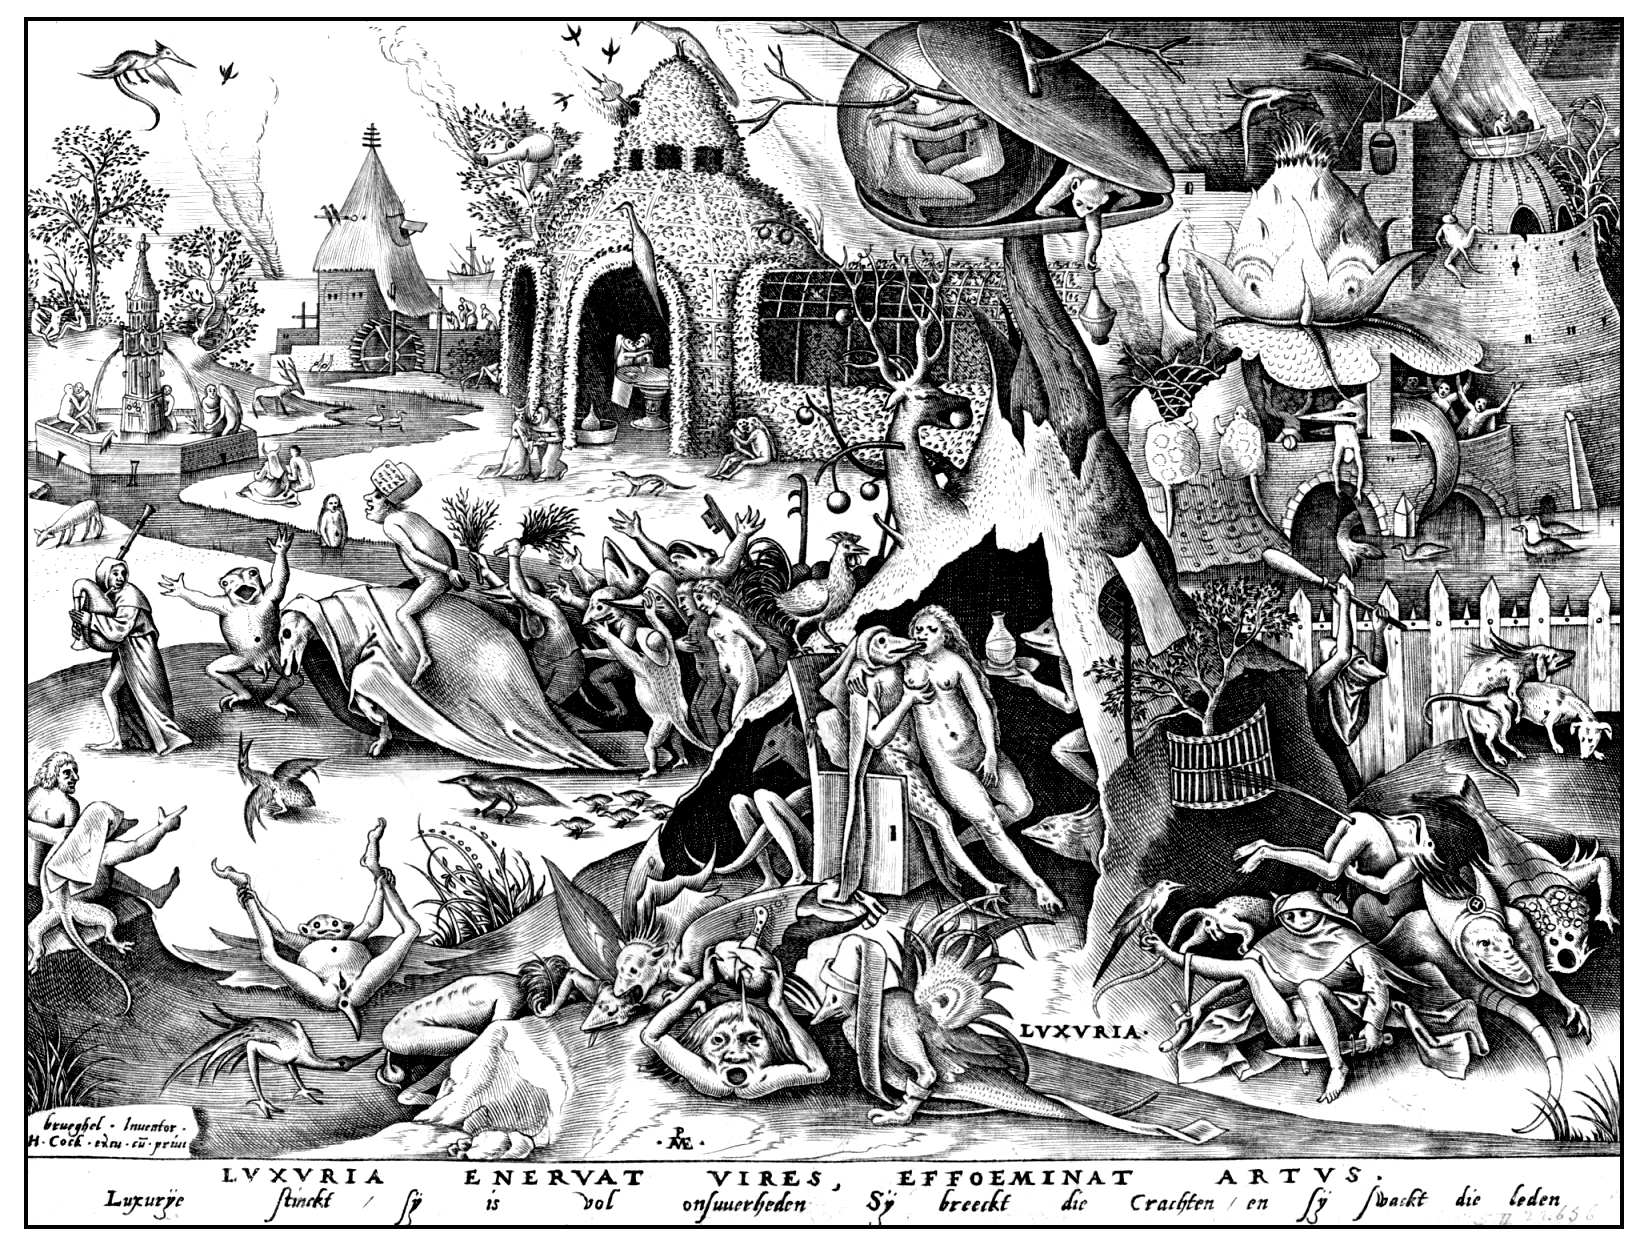 Luxuria, engraving by Pieter Bruegel, 1558